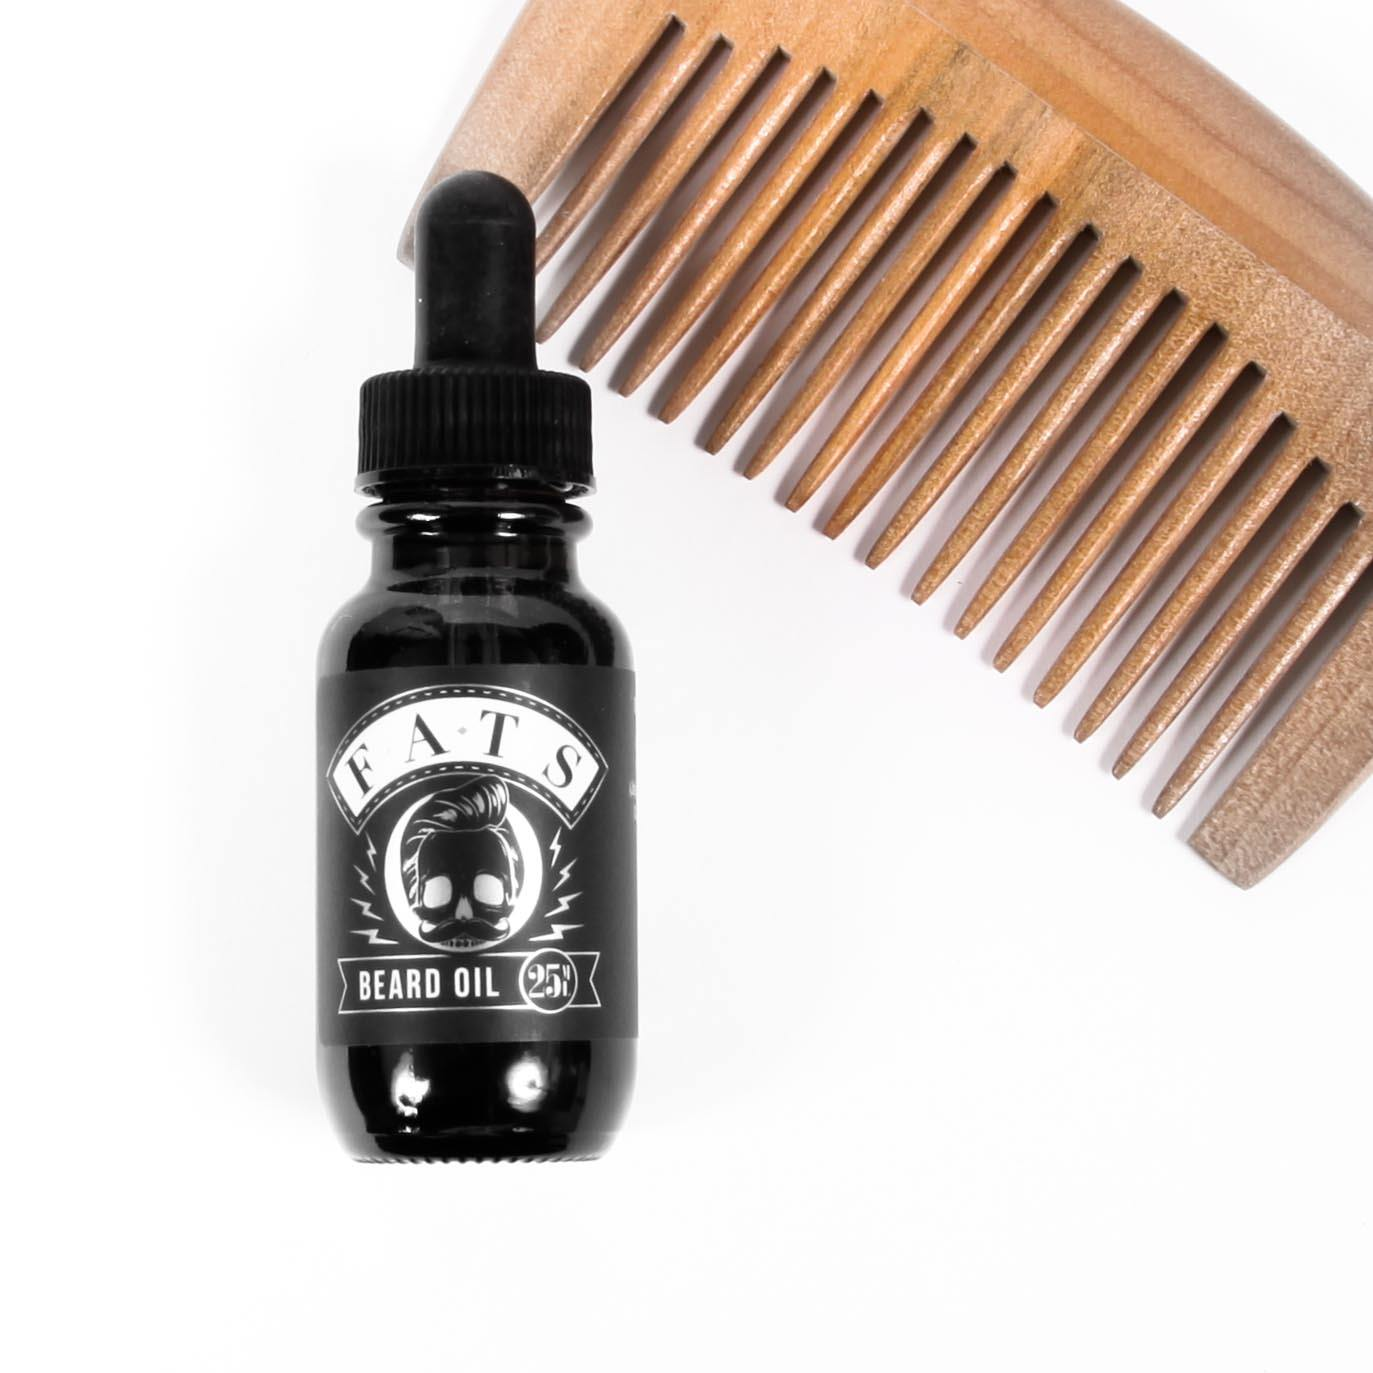 FATS Beard Oil 25ml